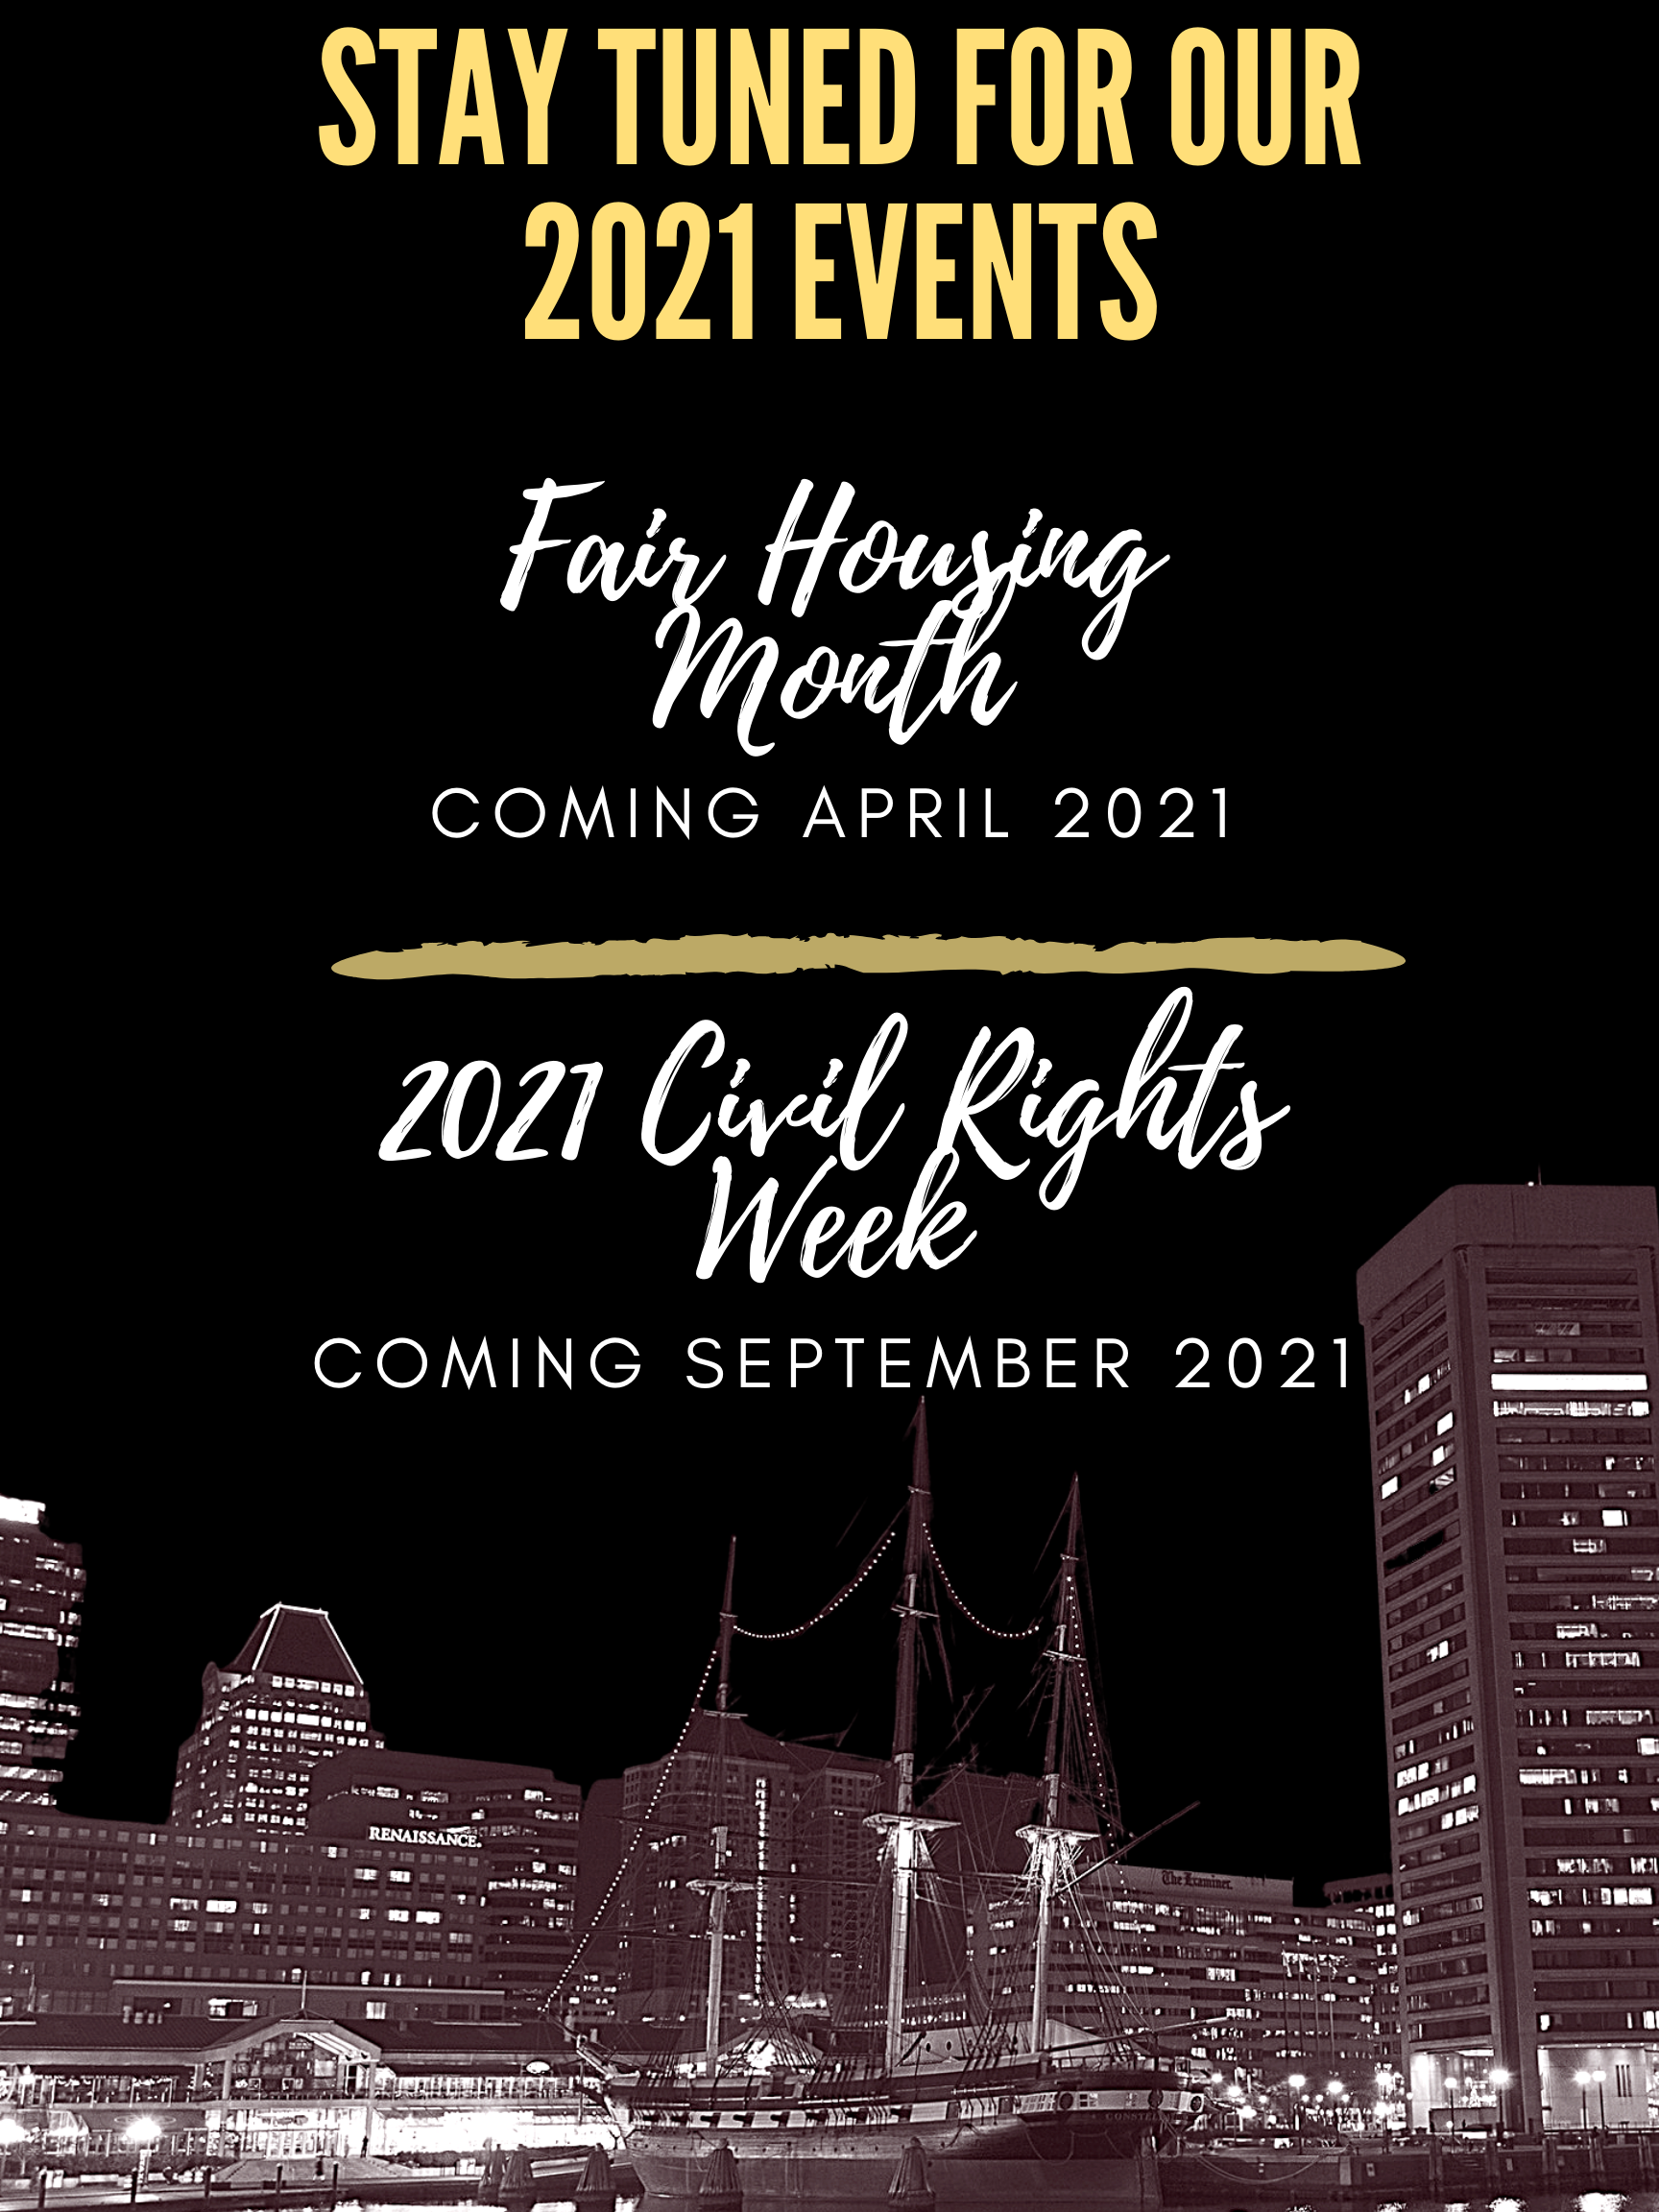 Stay Tuned for Our 2021 Events